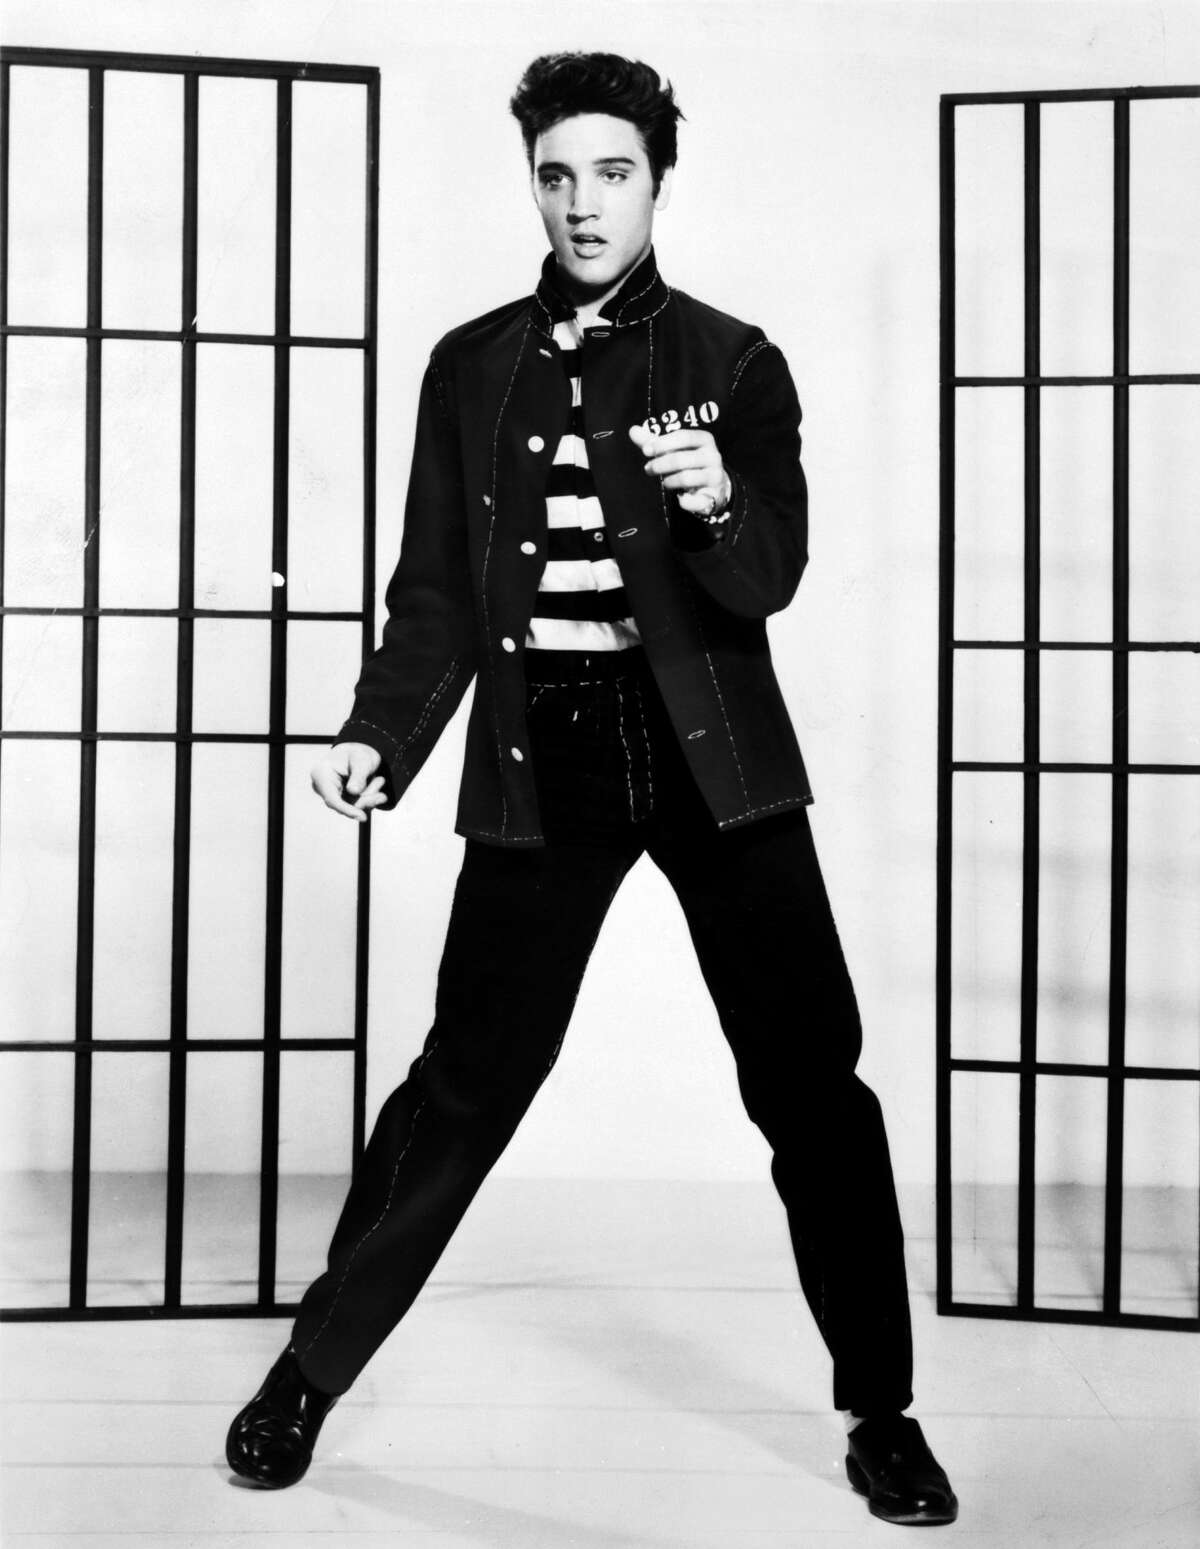 """Elvis Presley:Depending on who you ask, you'll either hear a theory as how the King of Rock 'n' Roll really died, or an even more elaborate explanation as to the theory he's still alive. Both theory angles have multiple reasons. The singer's cause of death by heart attack is often debated in these theories. However, the one that gets passed around the most lies with Elvis' tombstone. A 2017 Time Magazine article points out that Elvis' tombstone has his middle named misspelled. His middle name Aron is spelled with one """"a"""" as opposed to two. No legit name leads those to believe there's no legit death."""